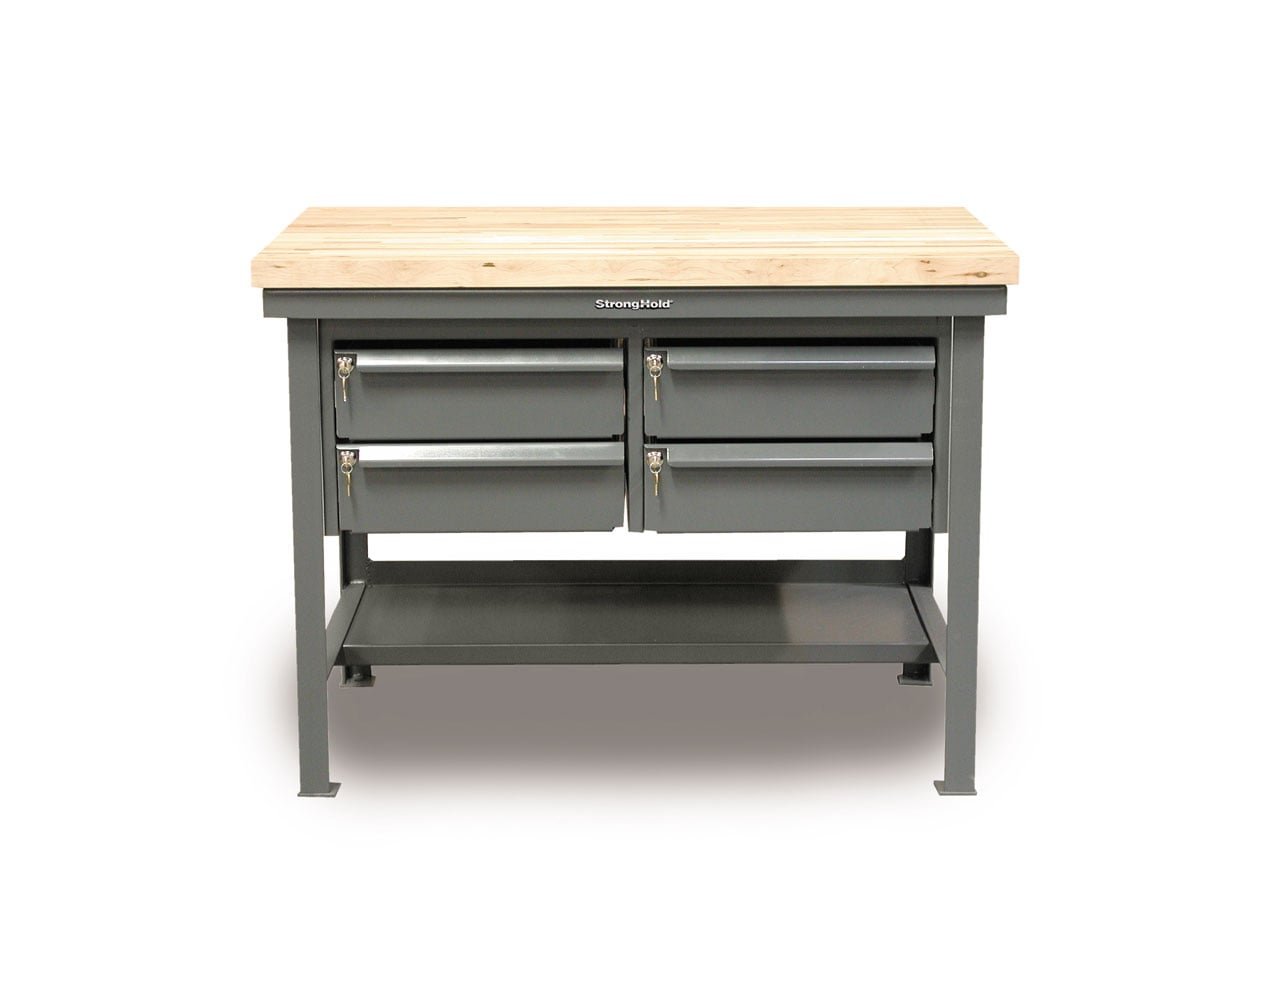 Extra Heavy Duty 7 GA Shop Table with Maple Top, 4 Keylock Drawers, 1 Shelf – 72 In. W x 36 In. D x 34 In. H